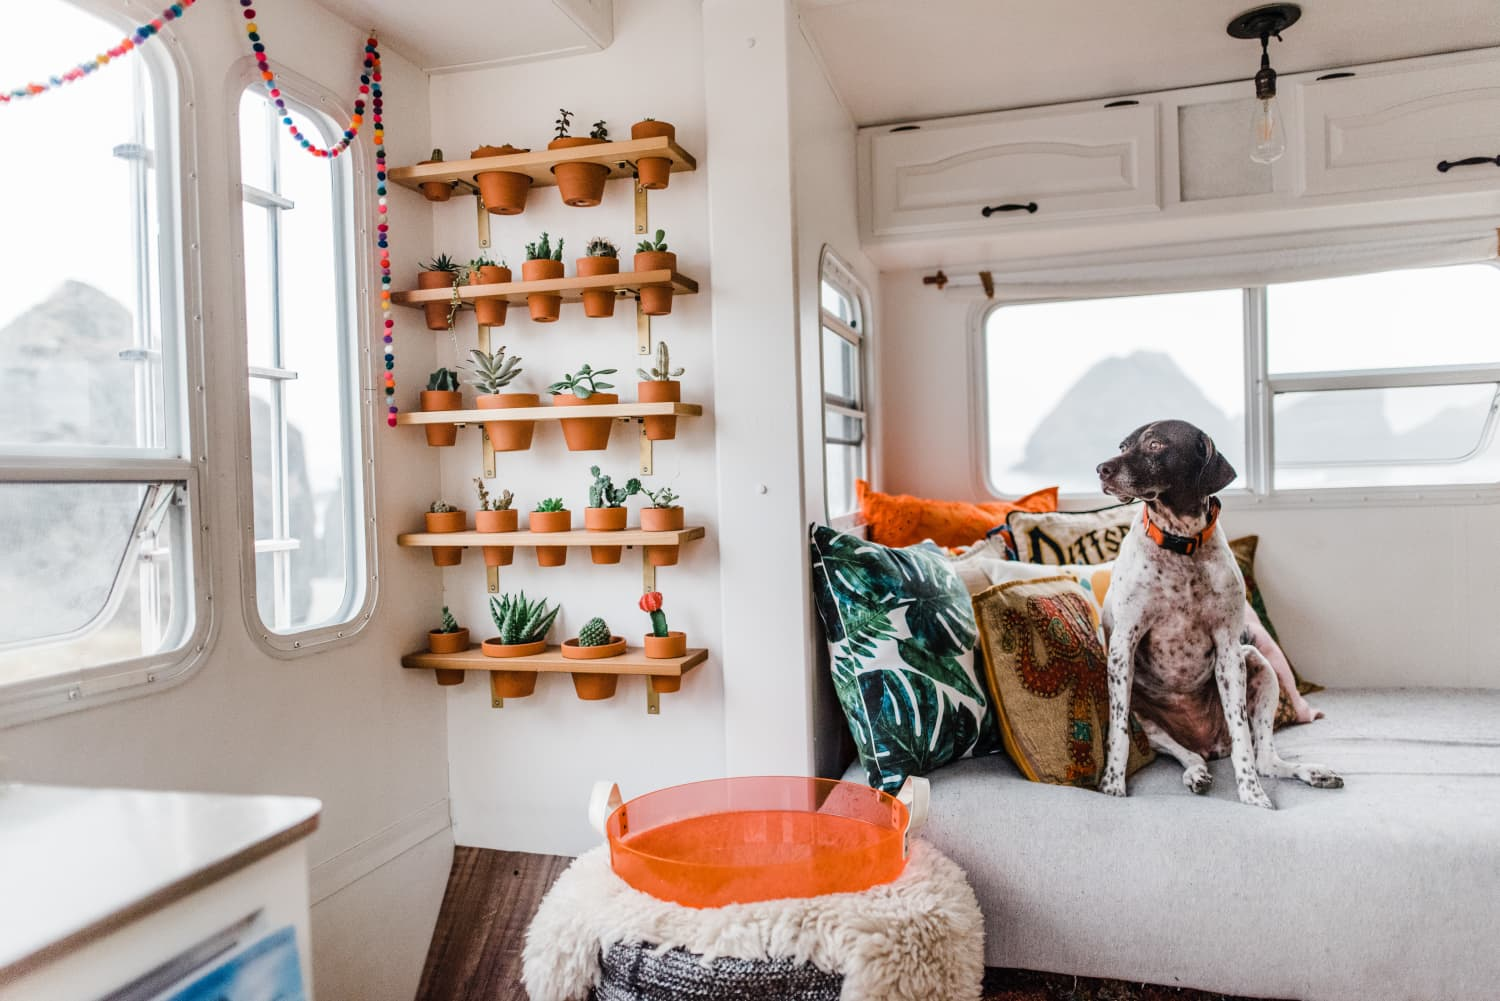 The Best-Designed Small Spaces Have This 1 Thing in Common